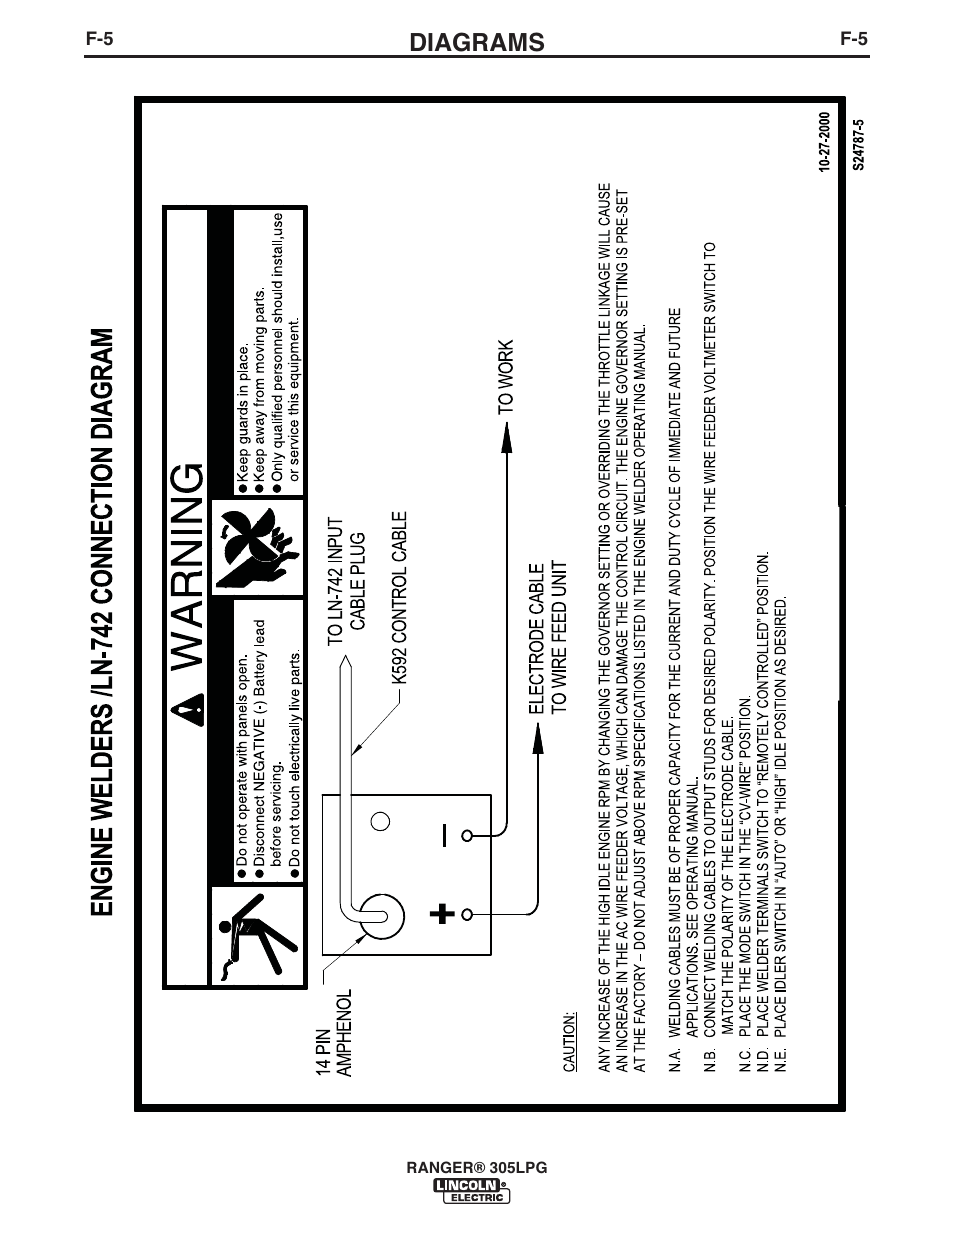 hight resolution of diagrams lincoln electric im10043 ranger 305 lpg user manual page 41 52